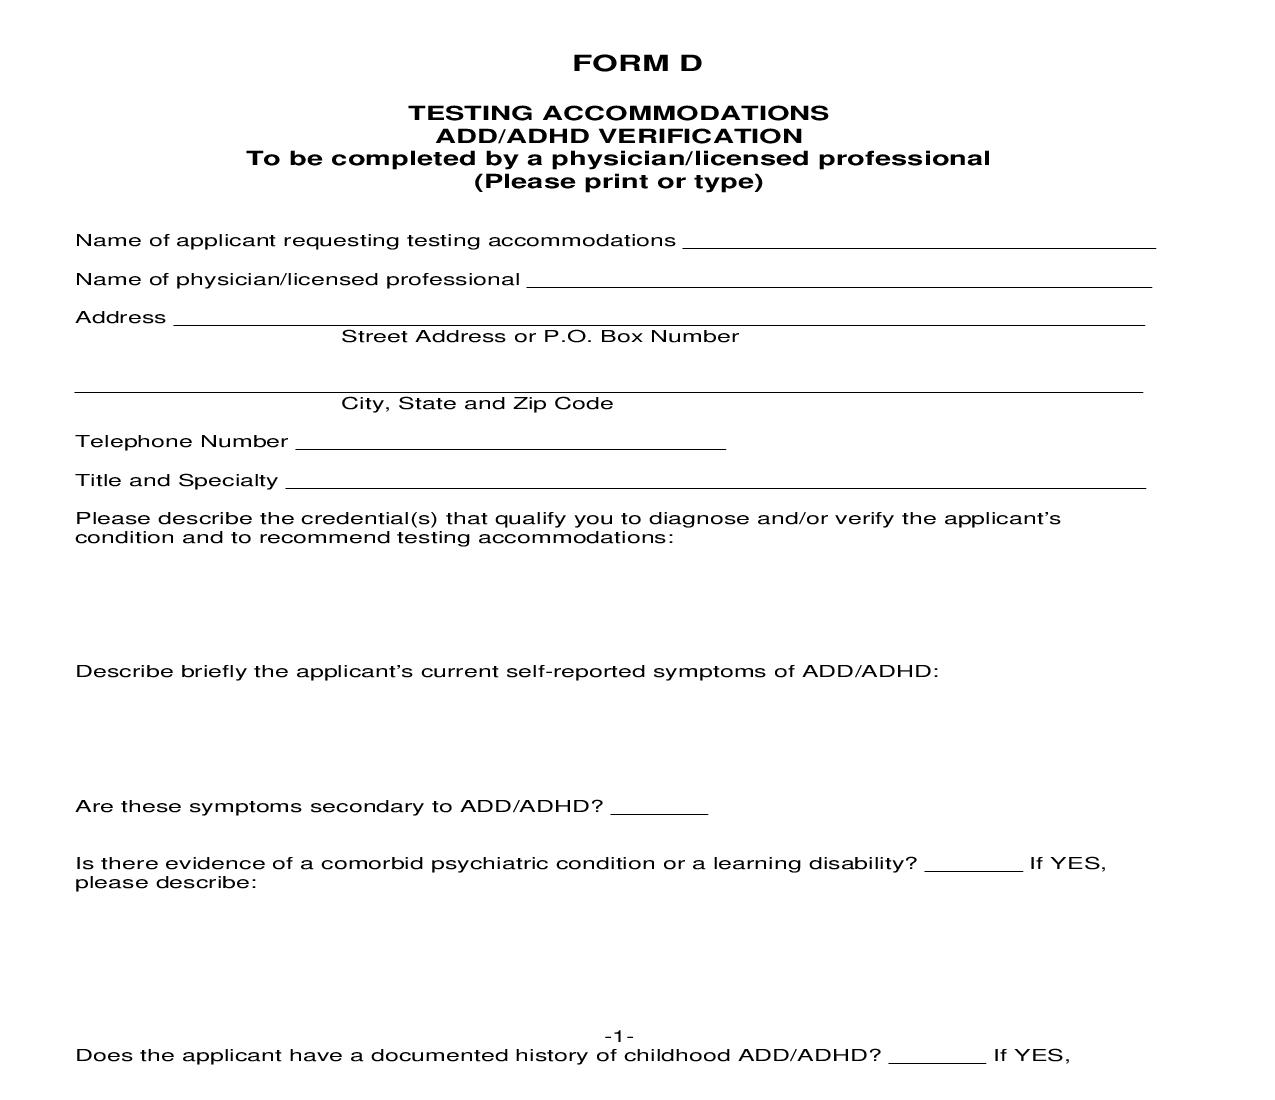 Application For Testing Accommodations - Form D | Pdf Fpdf Doc Docx | Iowa